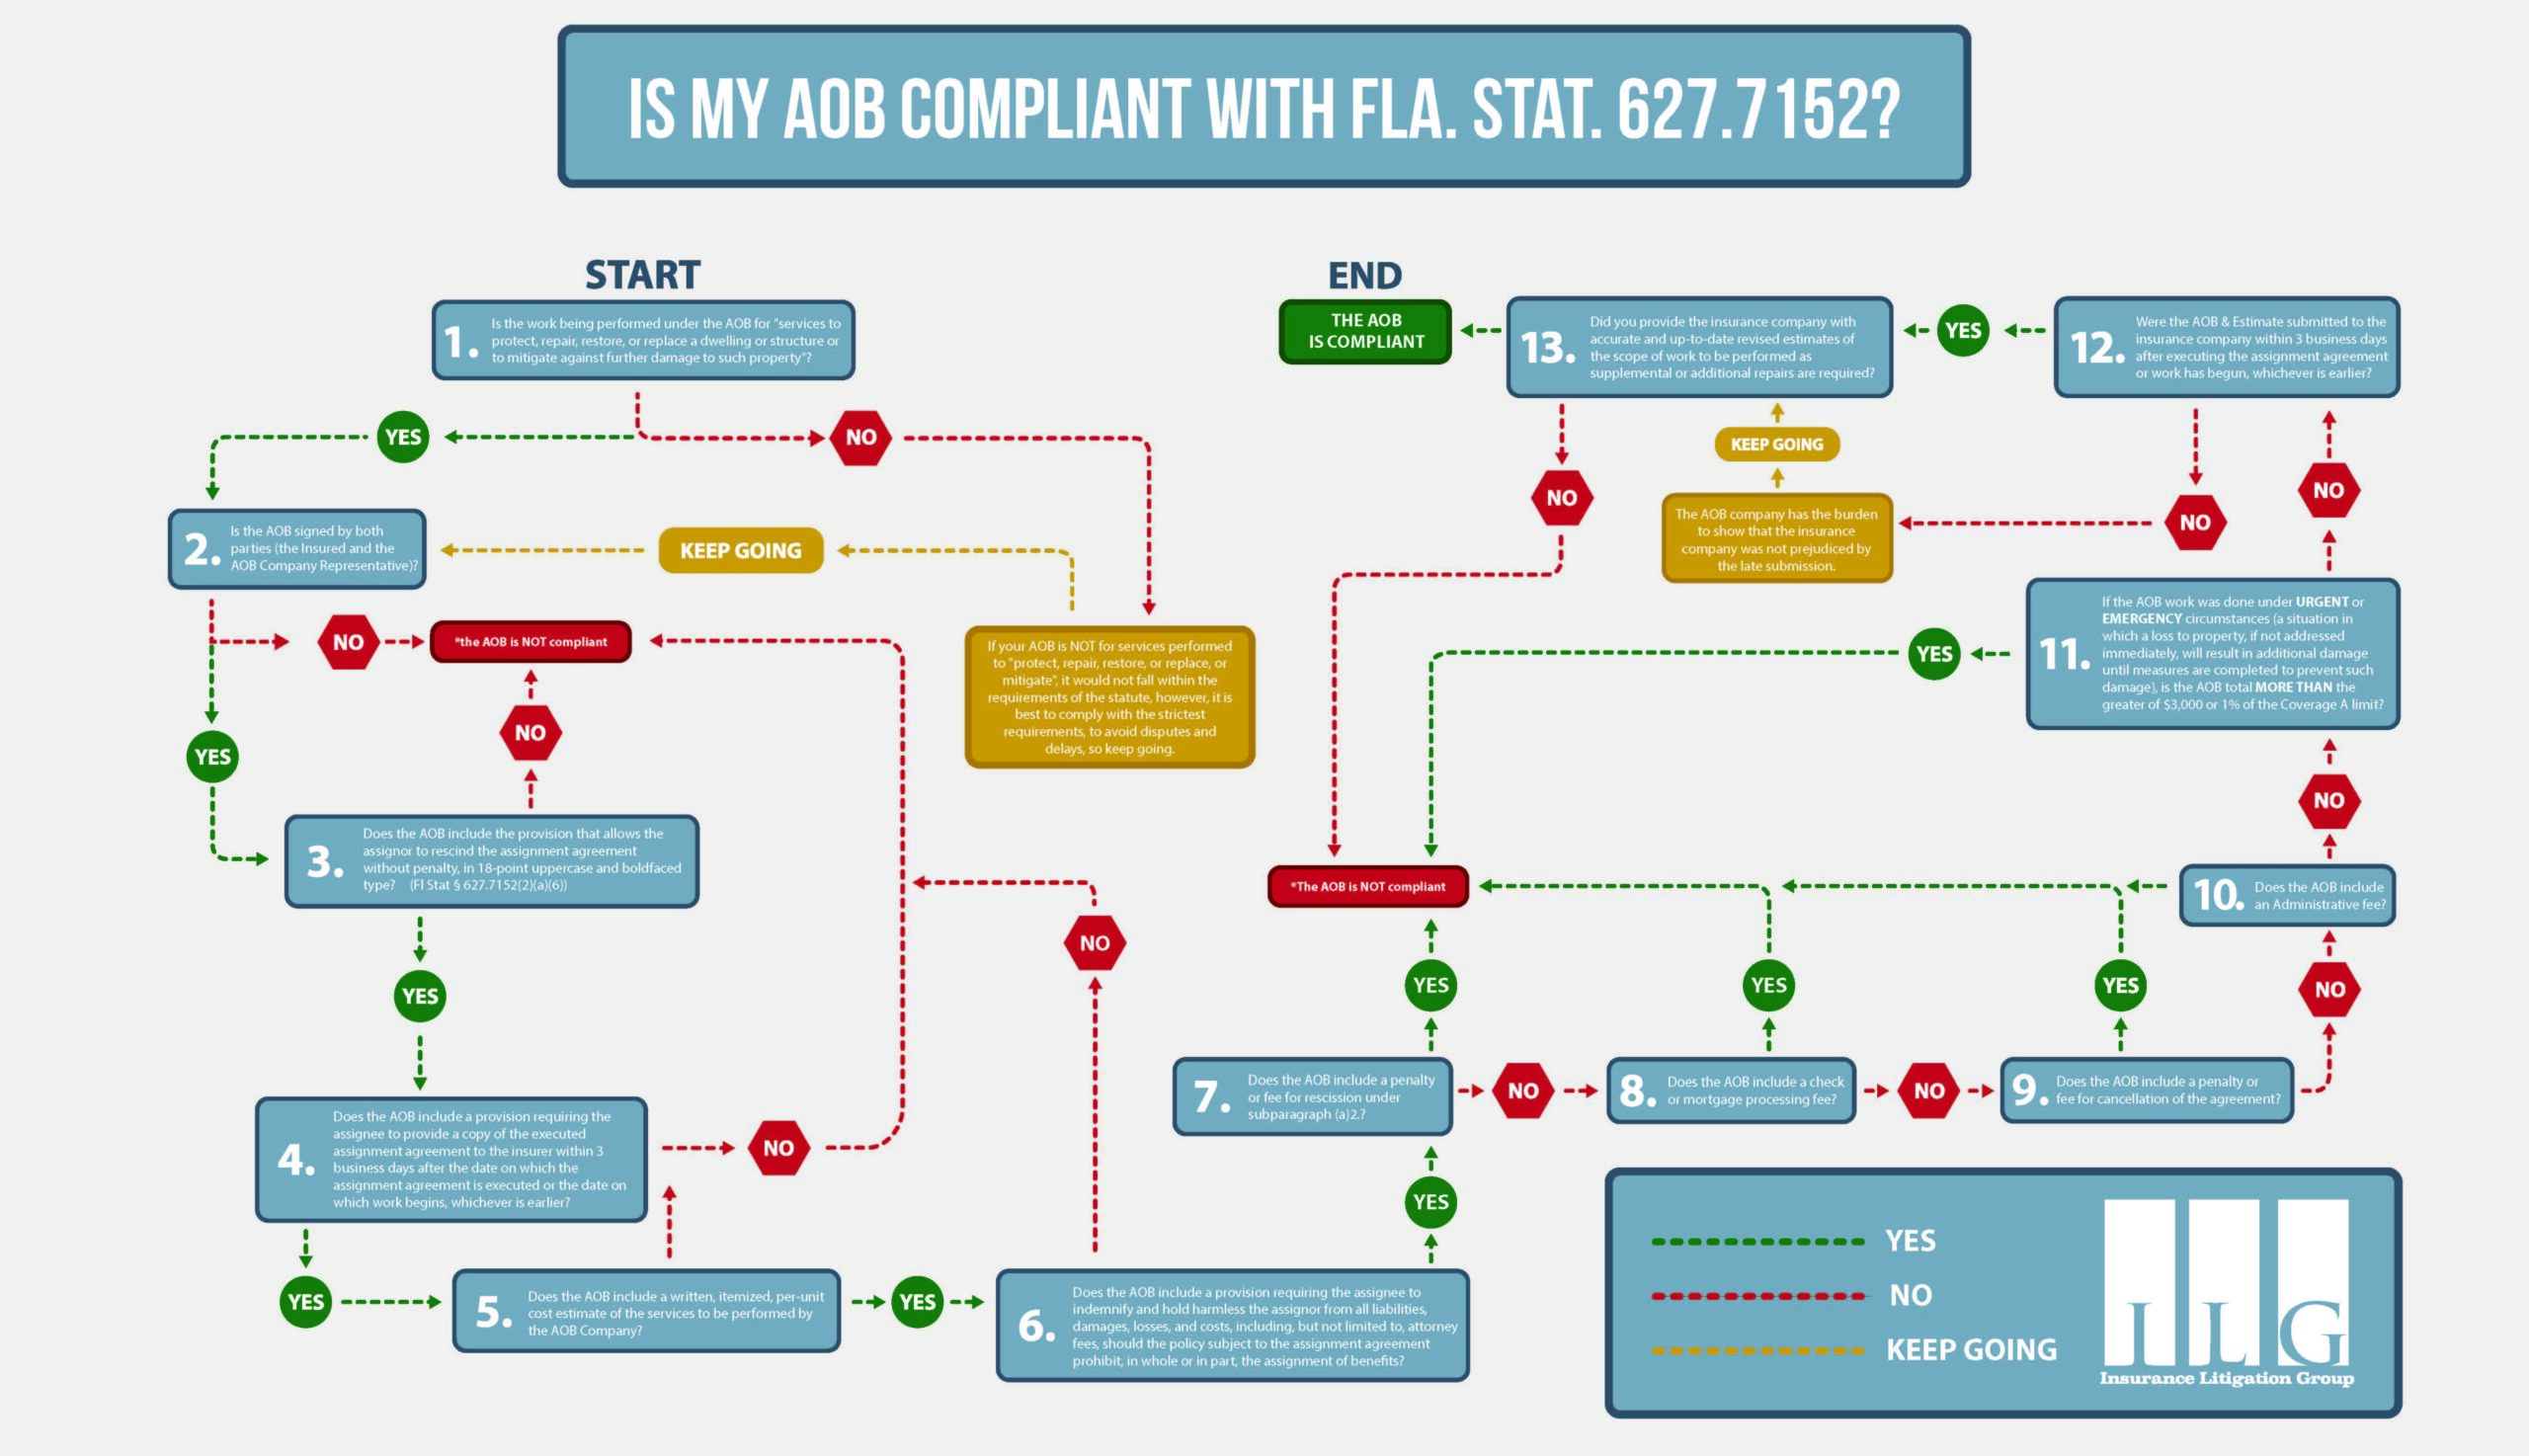 Are your AOB Claims being Paid  by the Insurance Companies?